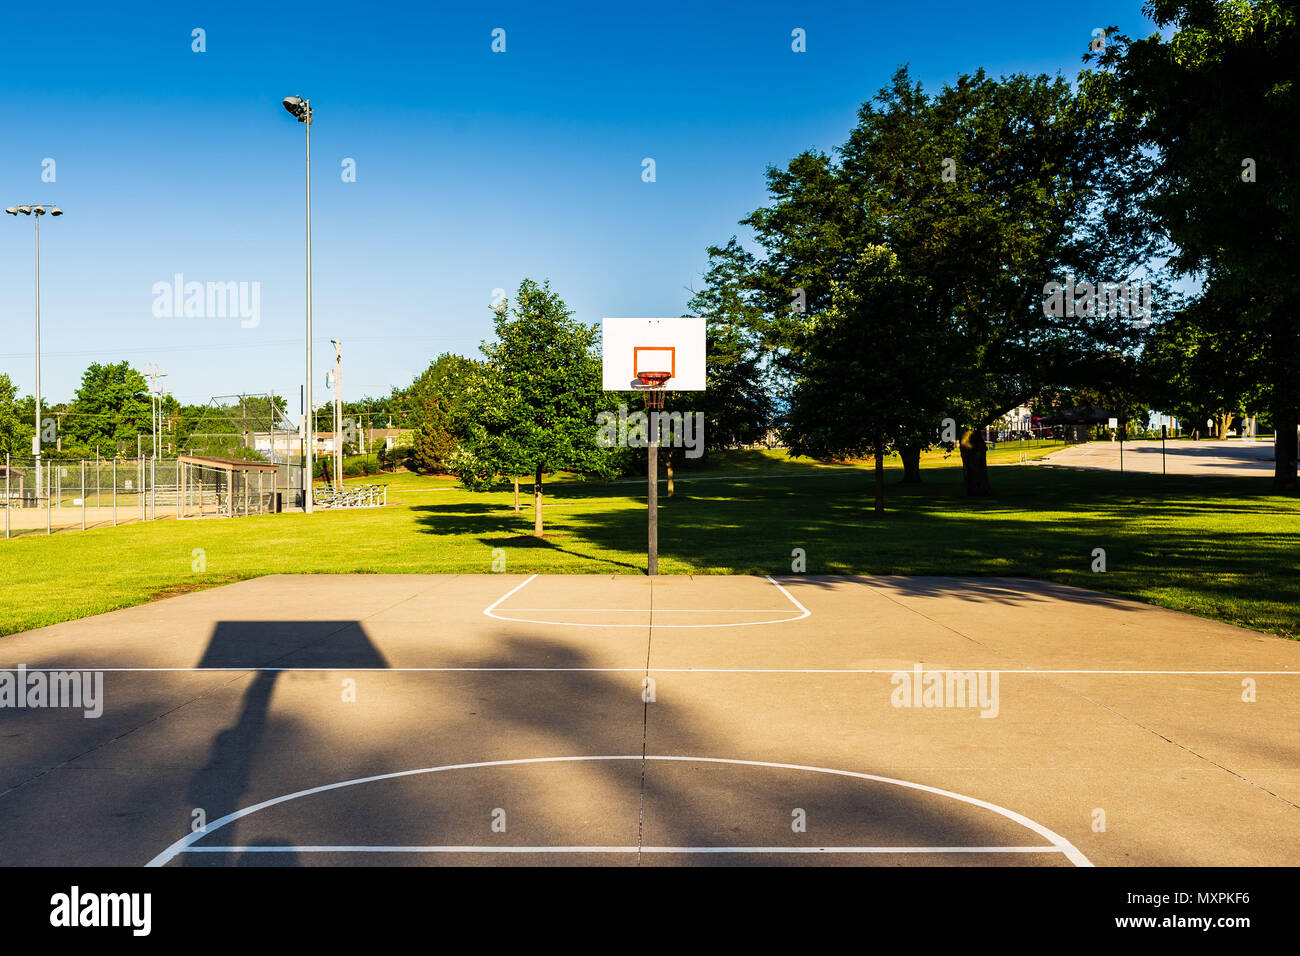 just waiting for a pickup game to get started - Stock Image